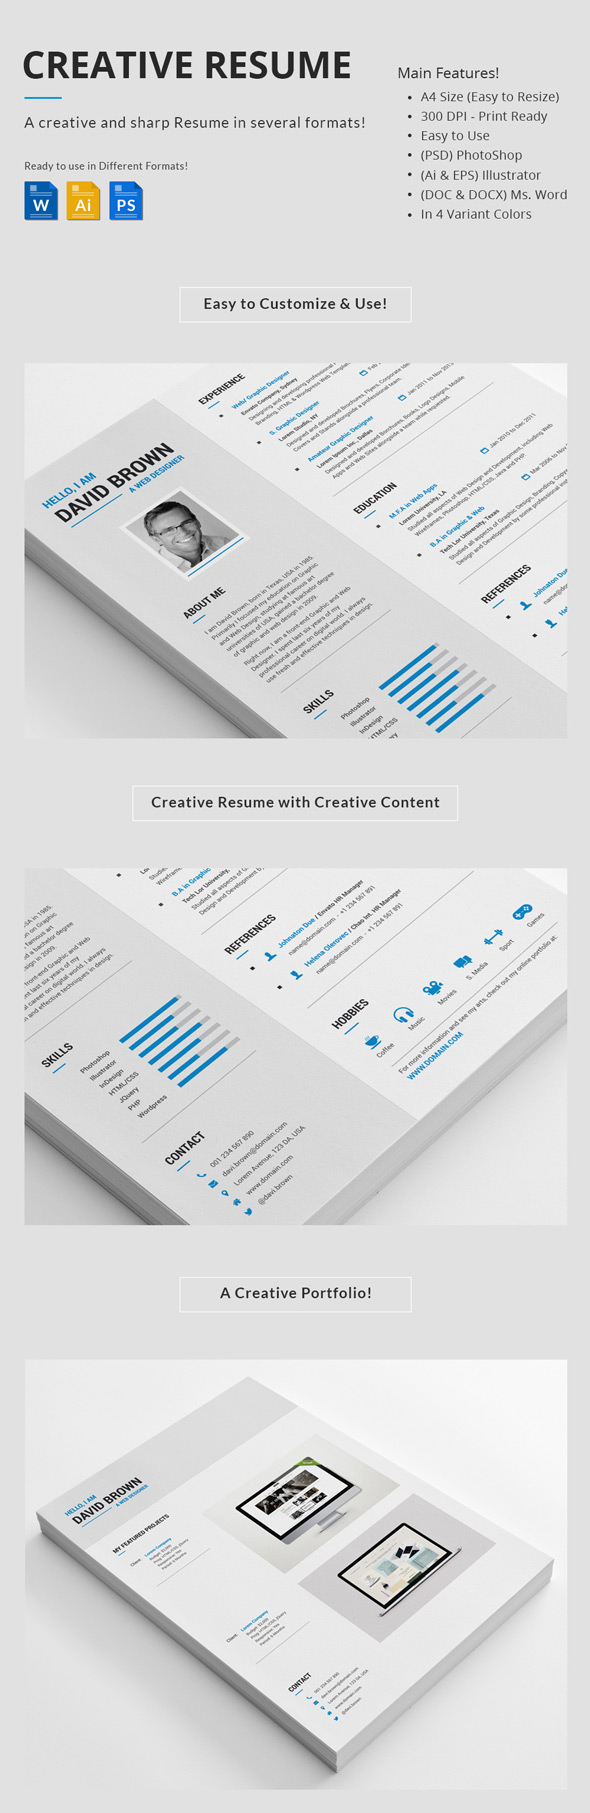 professional creative resume set. Resume Example. Resume CV Cover Letter